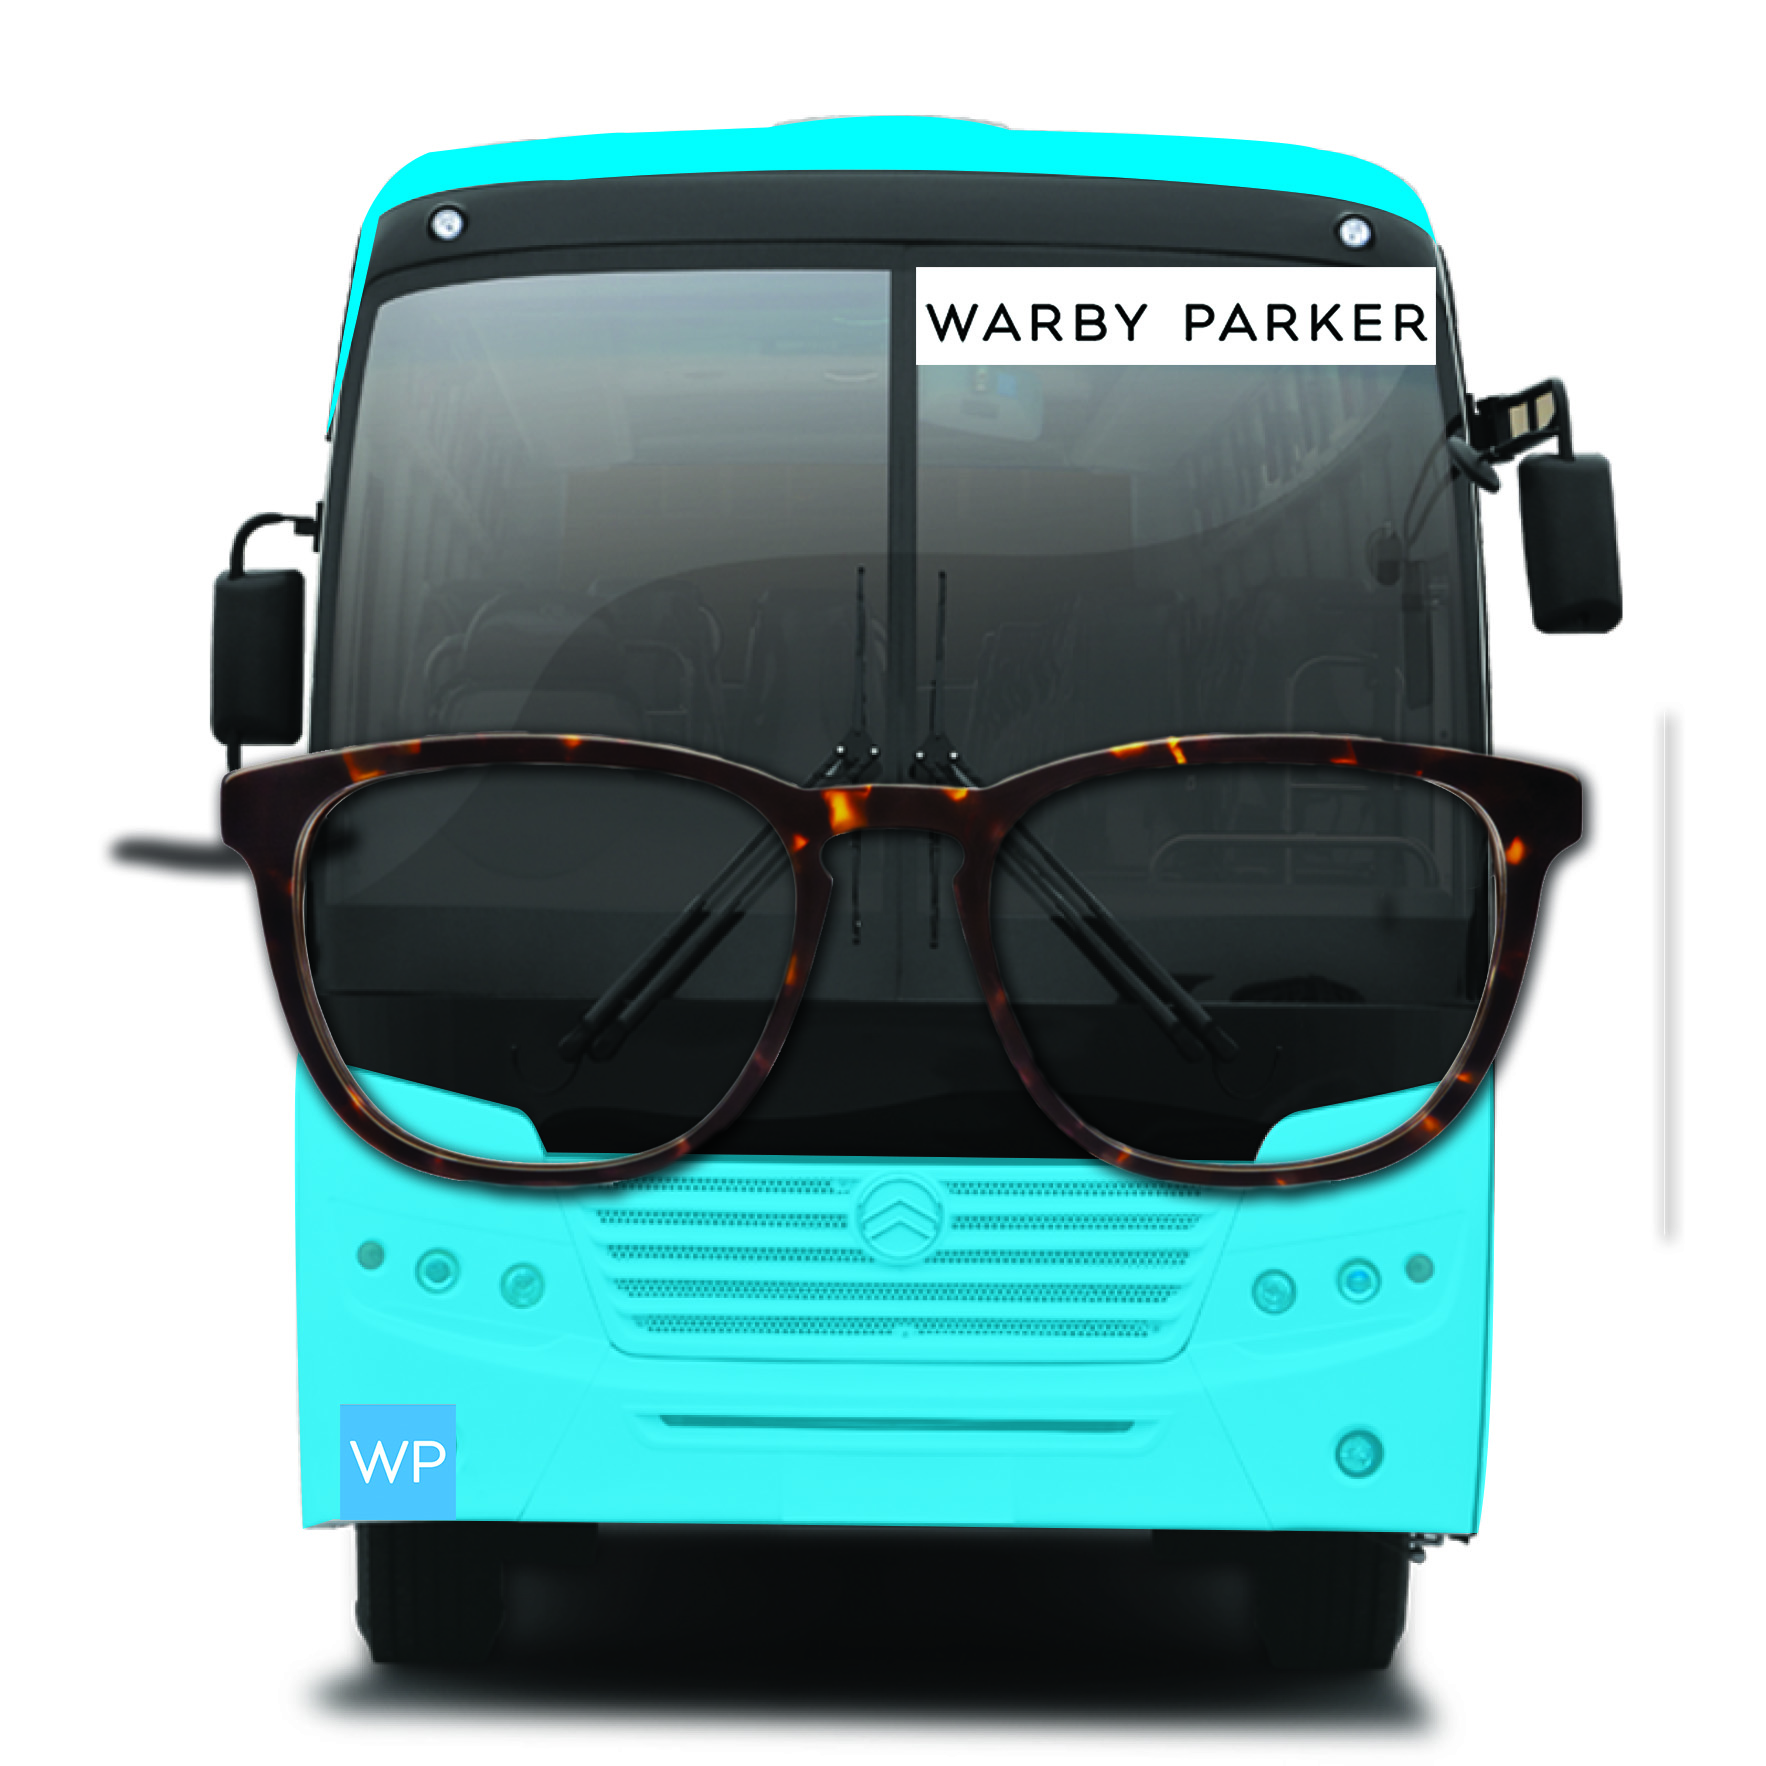 Frontal view of Warby Bus wrap that stops at the Warby branded bus stops.